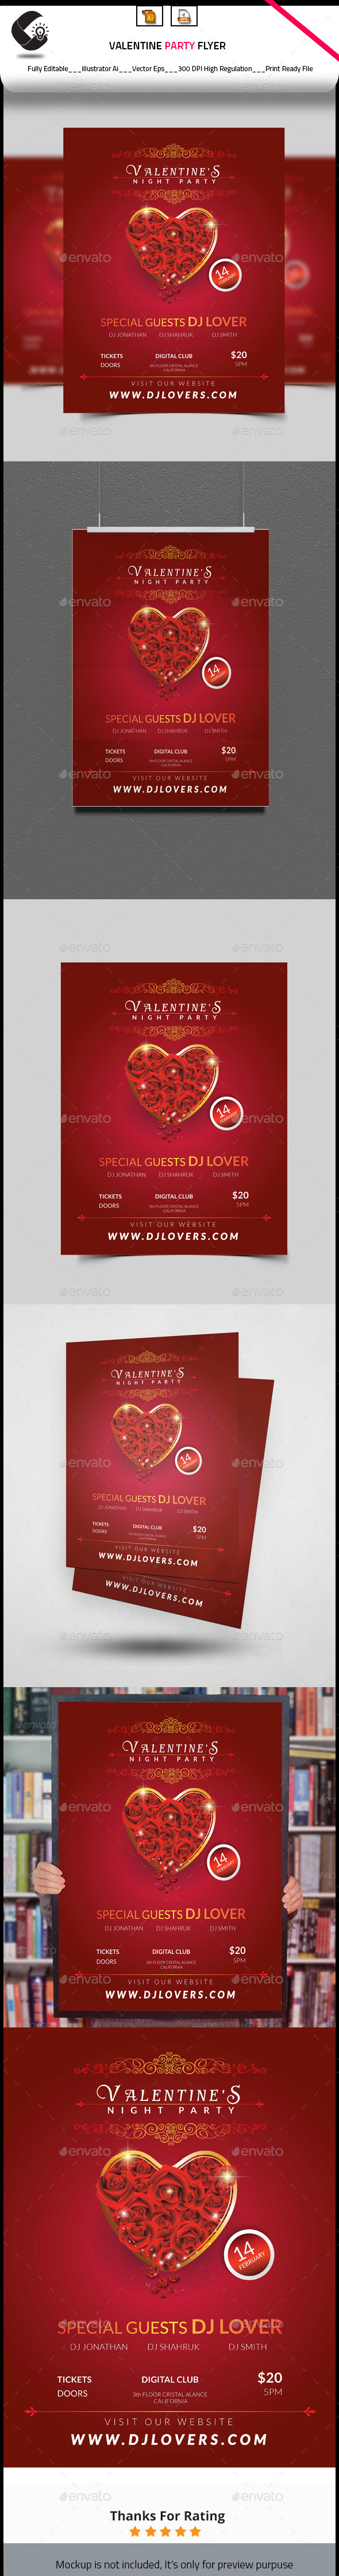 Valentine Special Party Flyer - Clubs & Parties Events